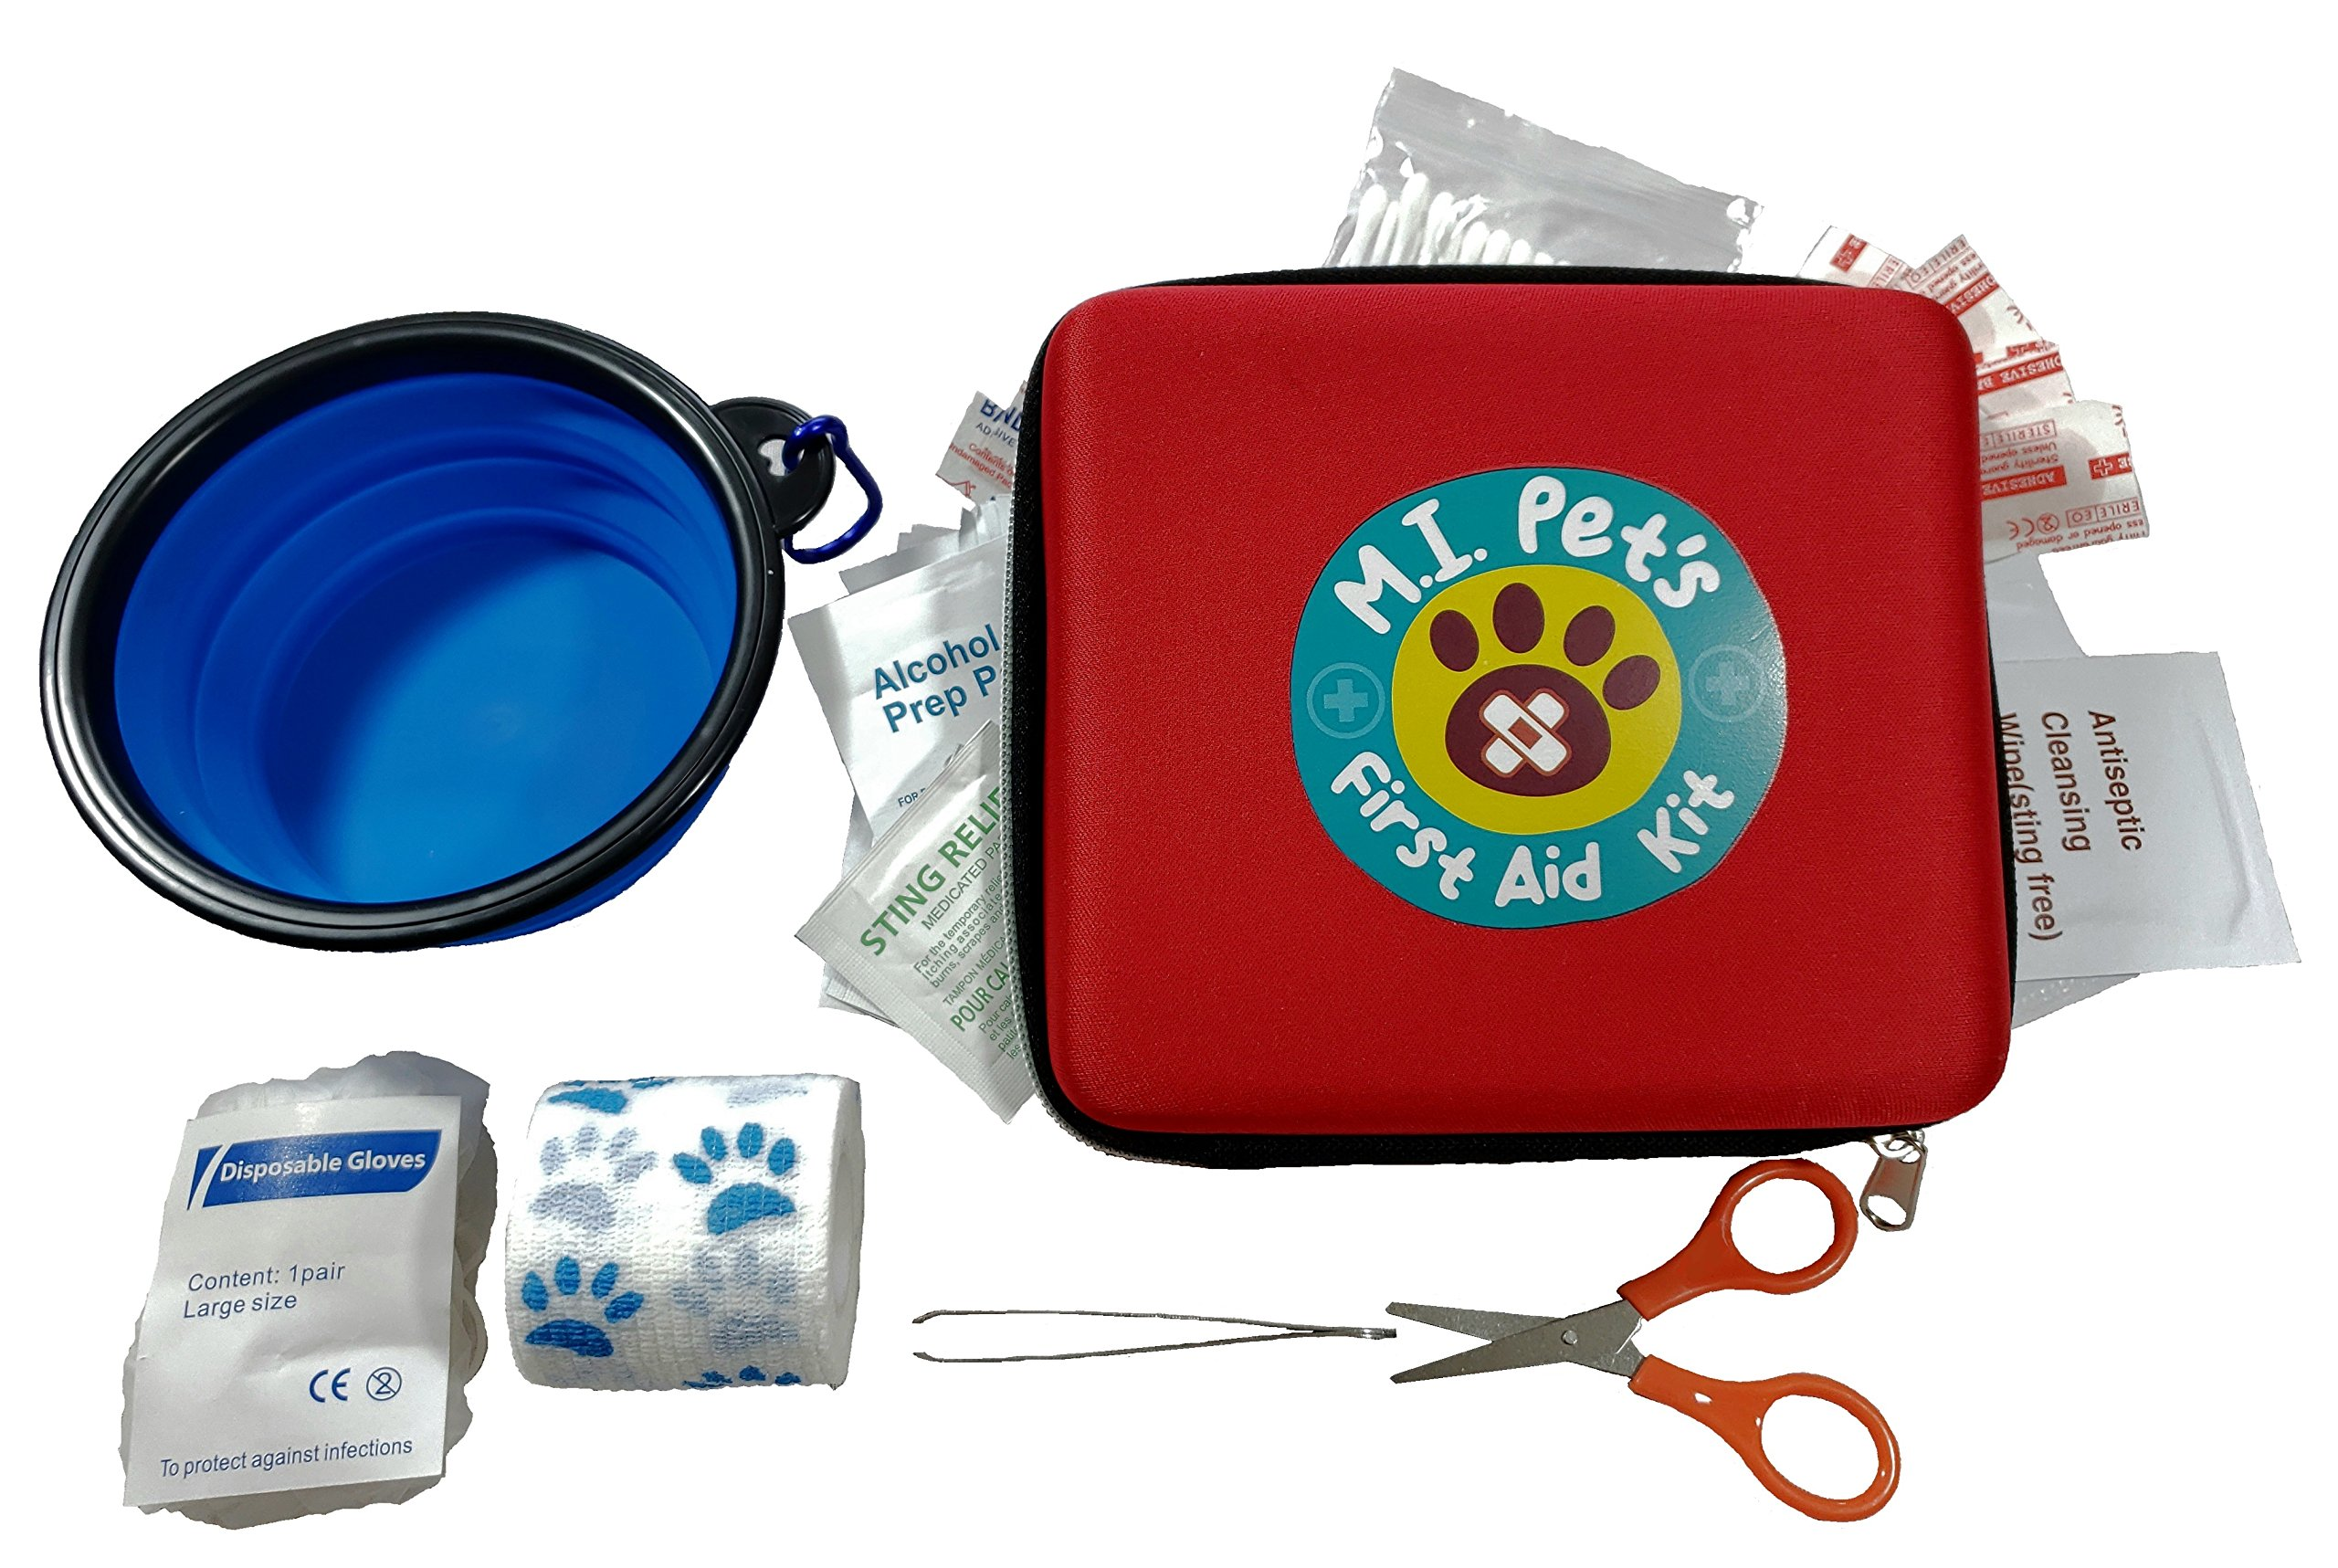 M.I. Pet's - 76 Piece Pet First Aid Kit with a Collapsible Food or Water Bowl by M.I. Pets